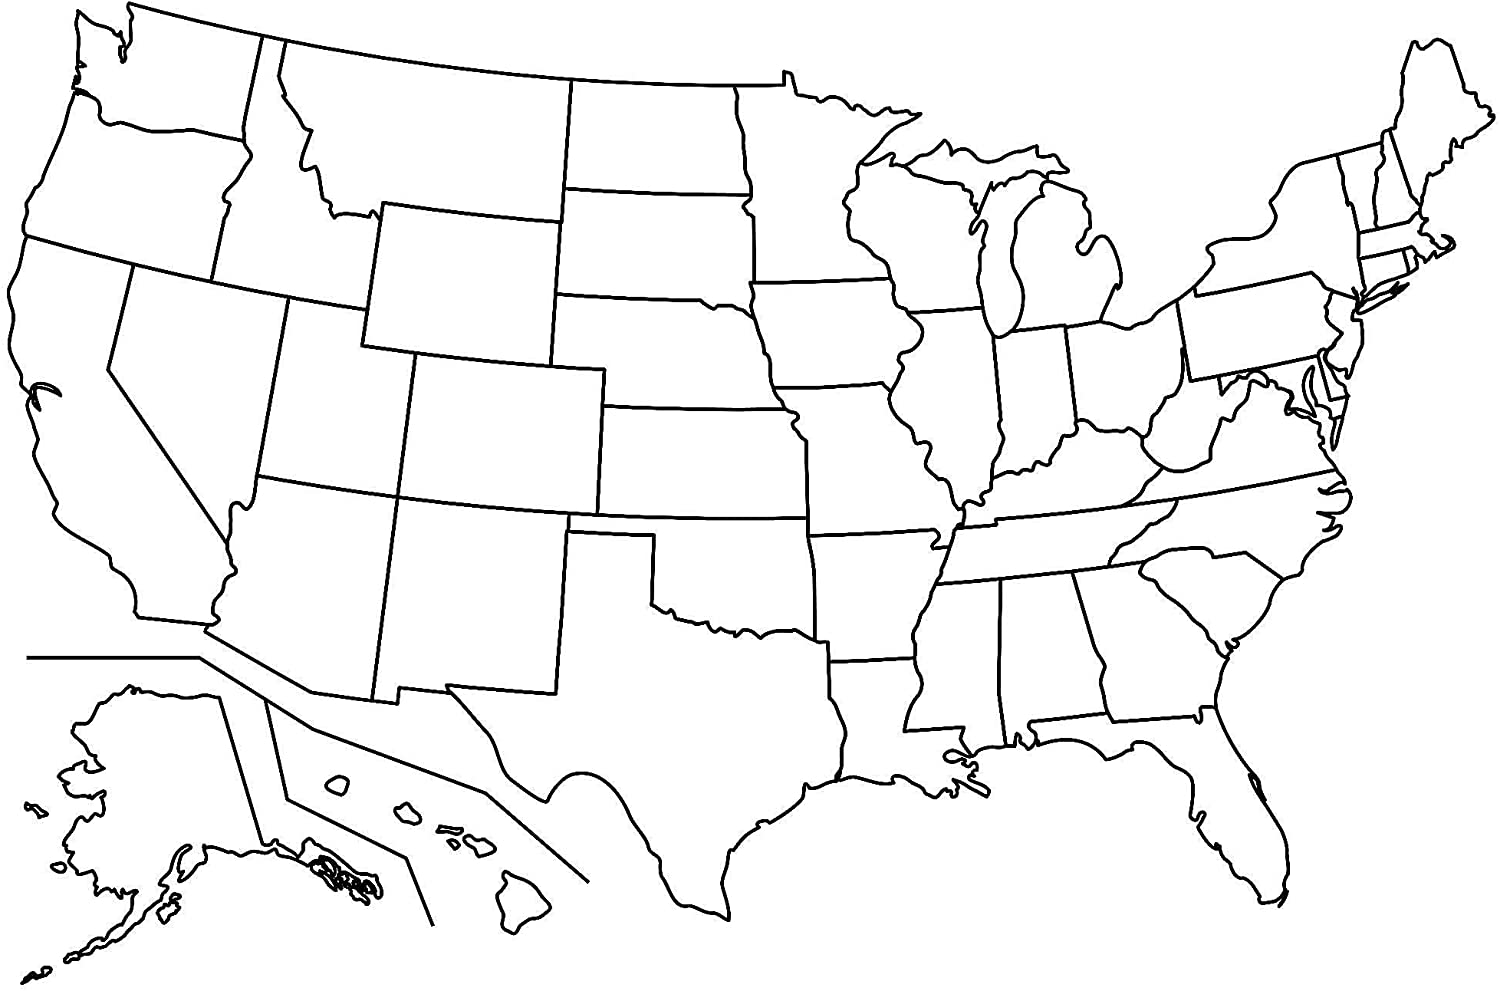 U S State Map Blank Amazon.com: ConversationPrints Blank United States MAP Glossy